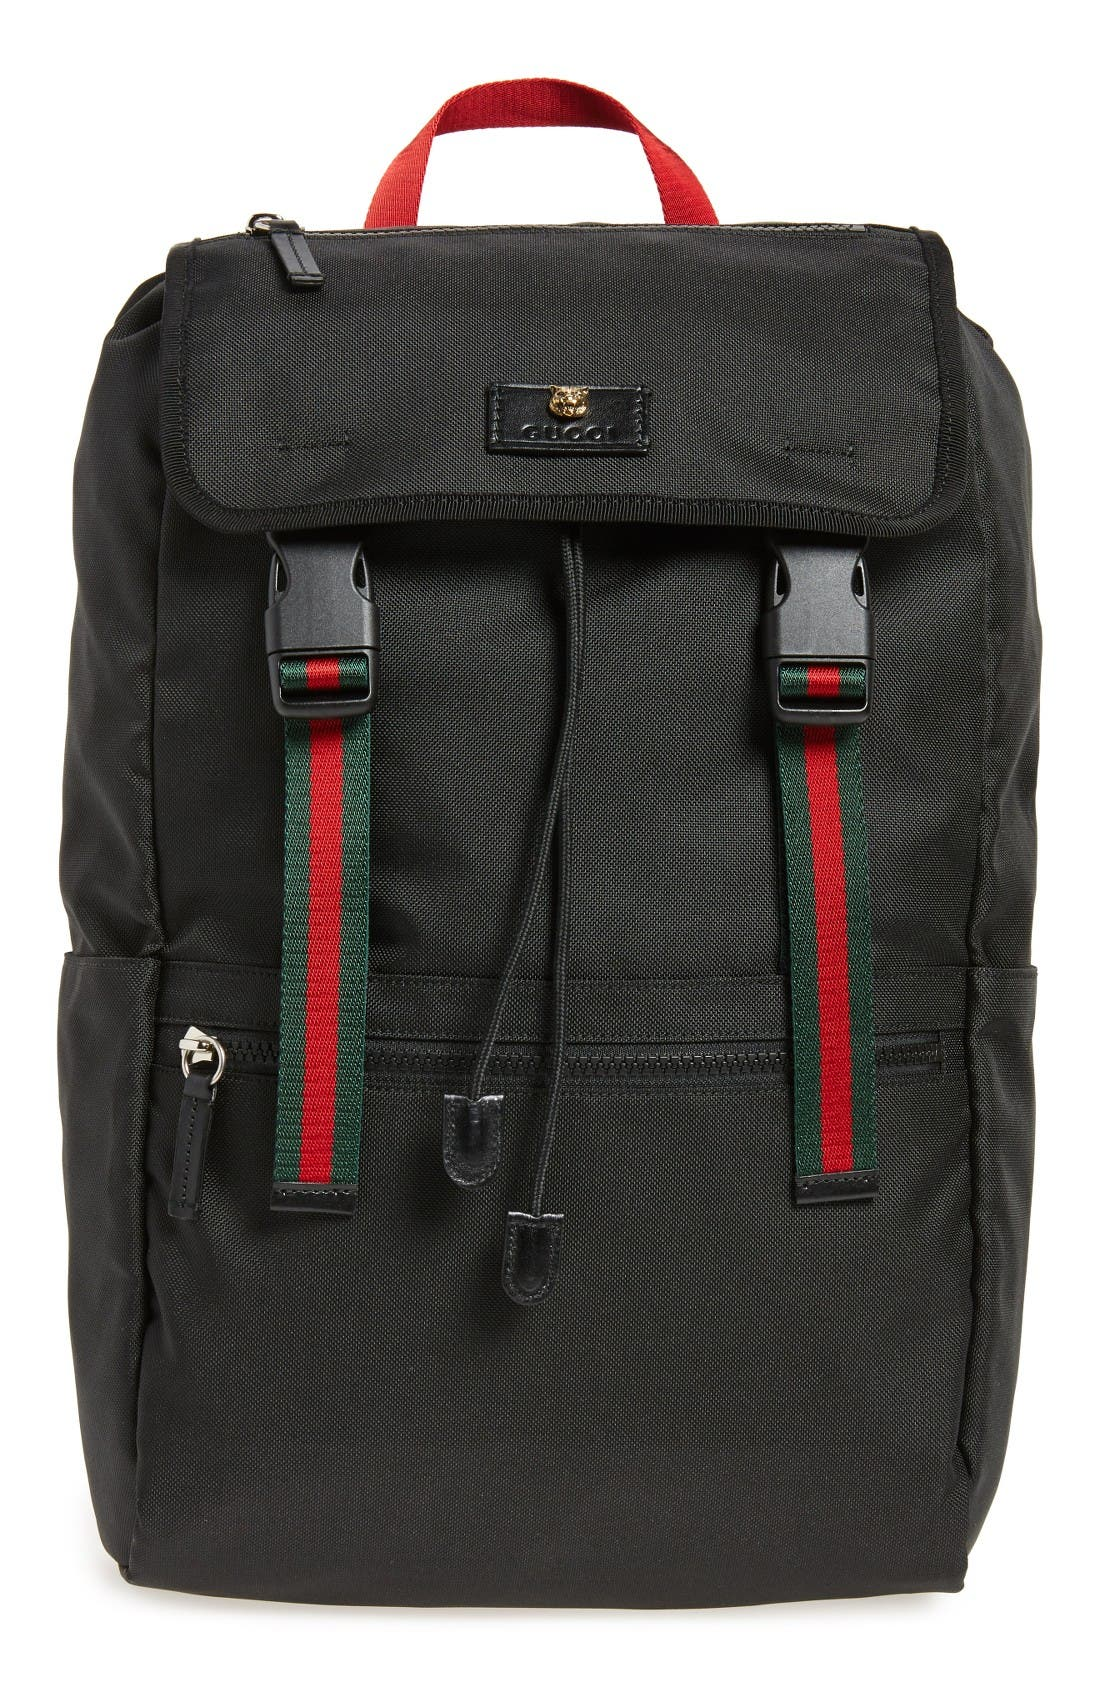 gucci book bags for men. main image - gucci backpack book bags for men c